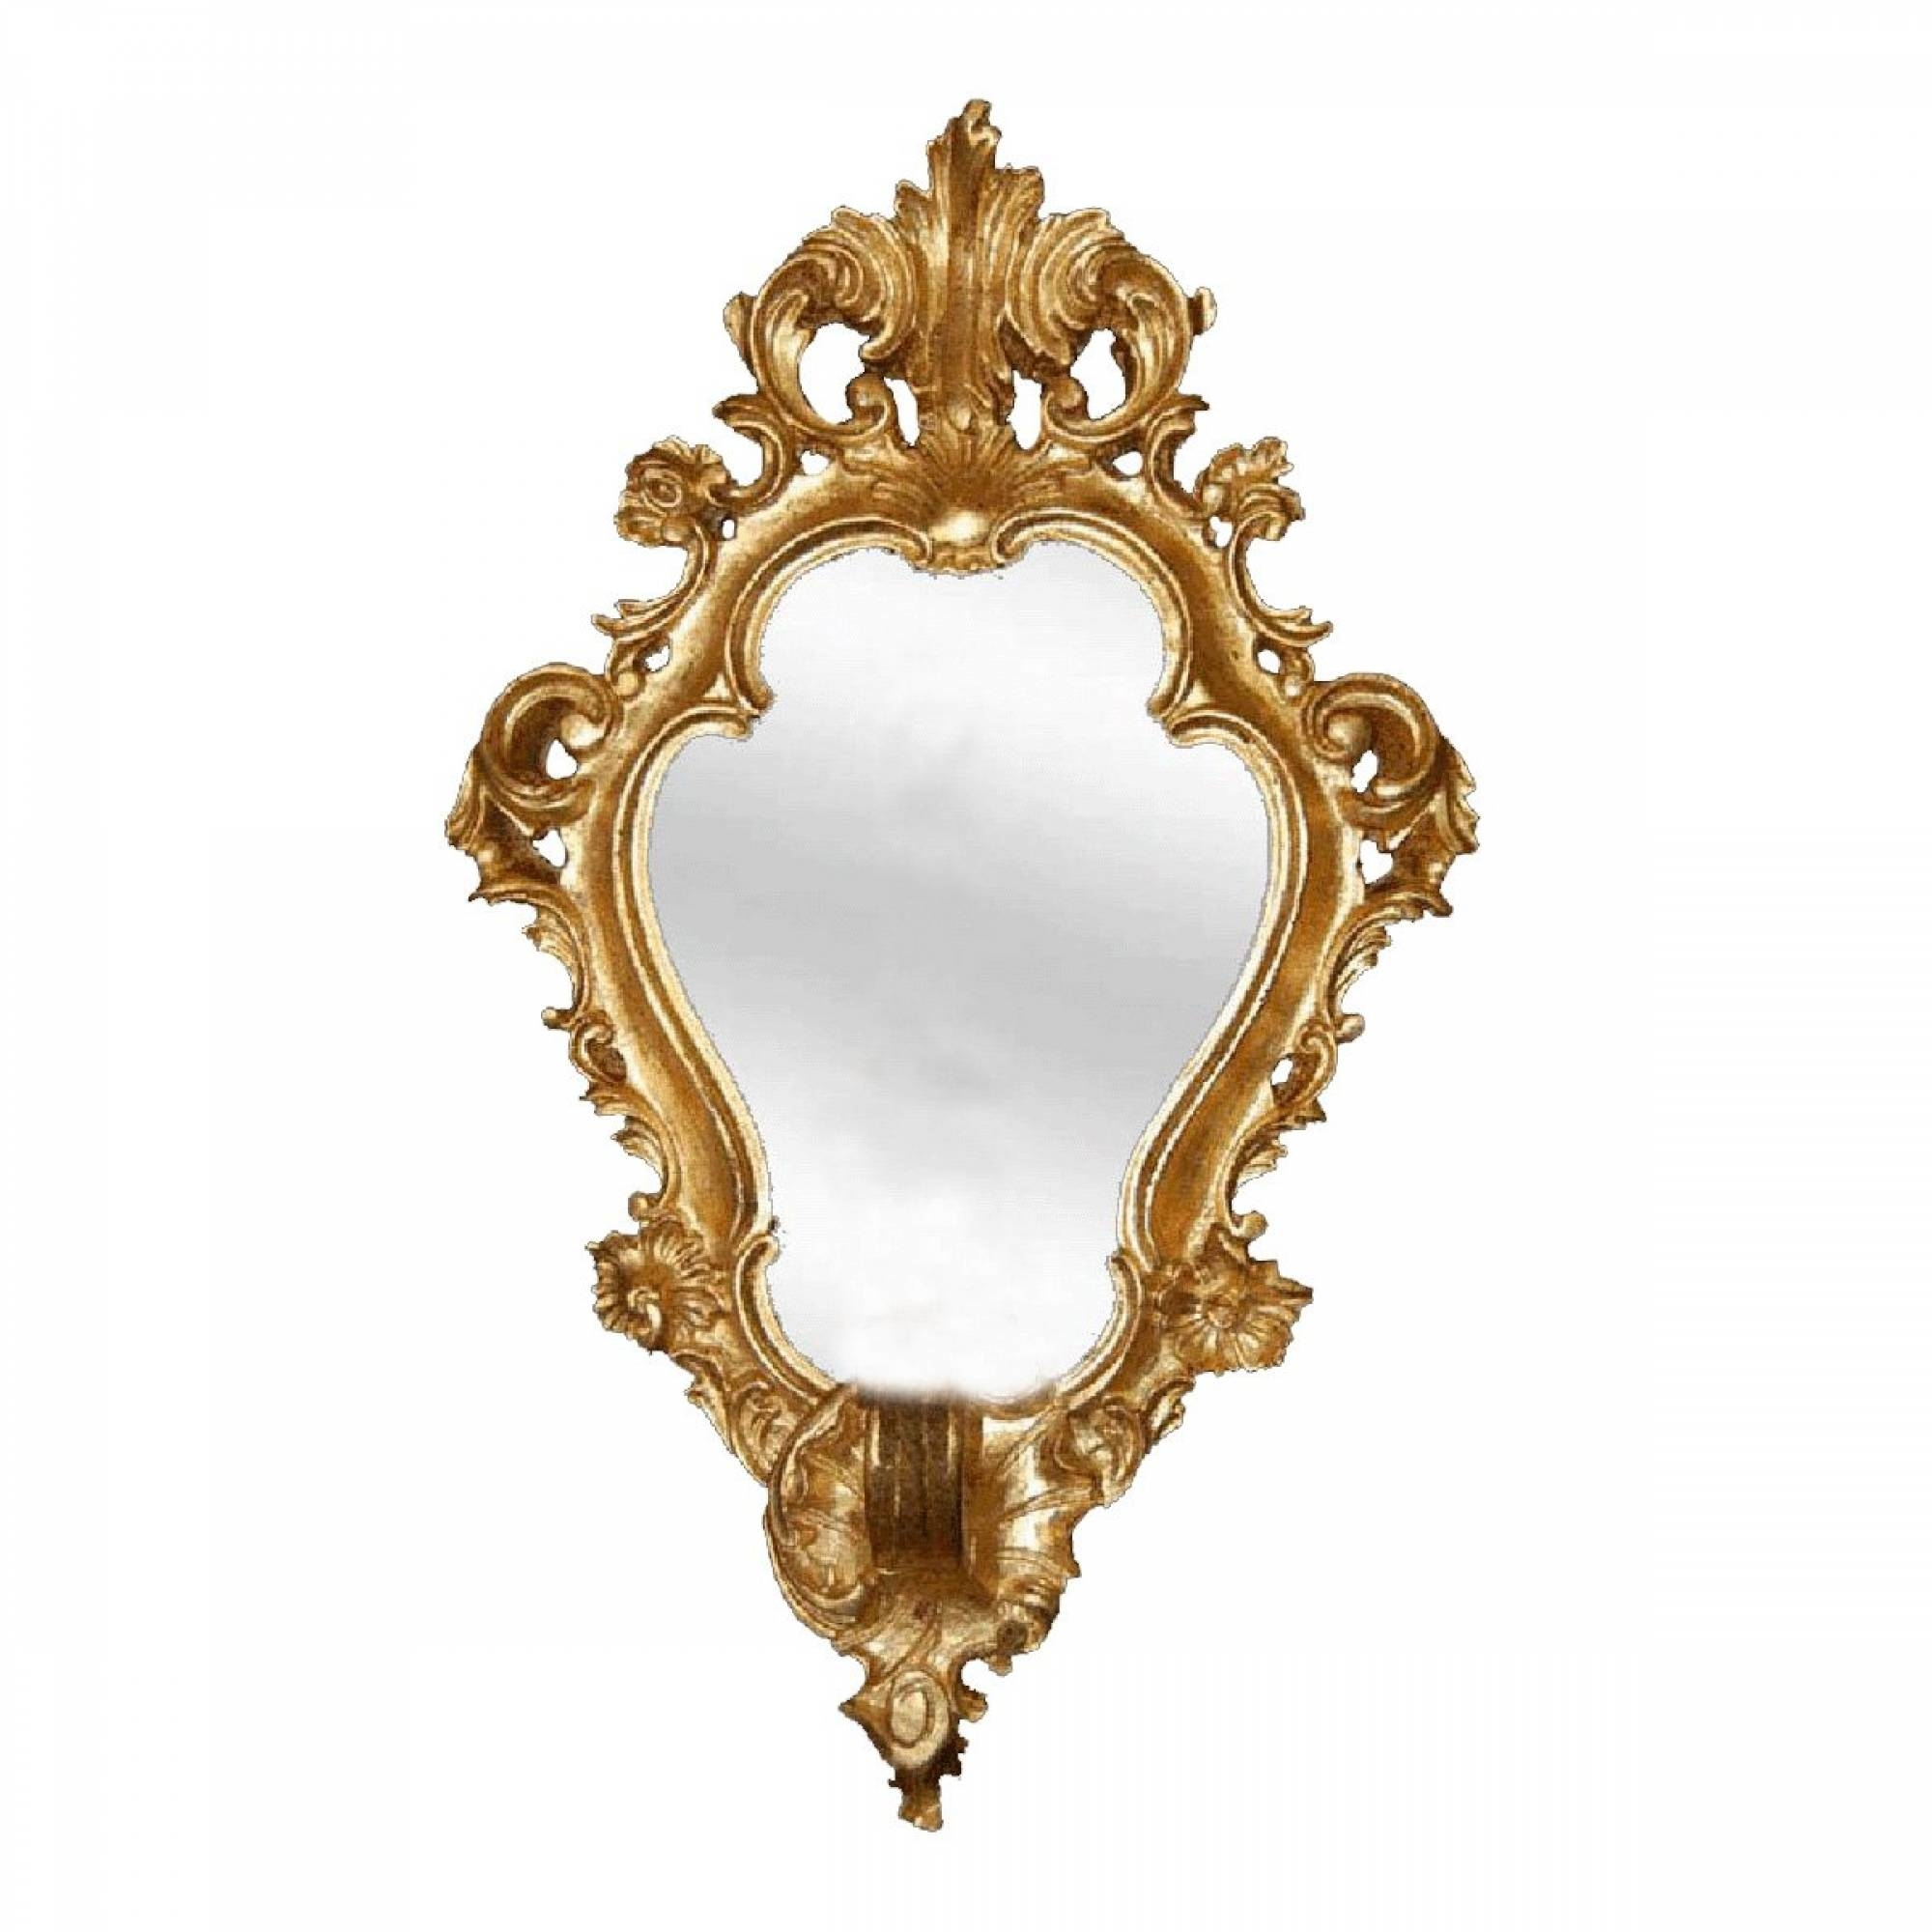 Bathroom: Astounding Baroque Mirror With Unique Frame For Bathroom in Cheap Baroque Mirrors (Image 8 of 25)